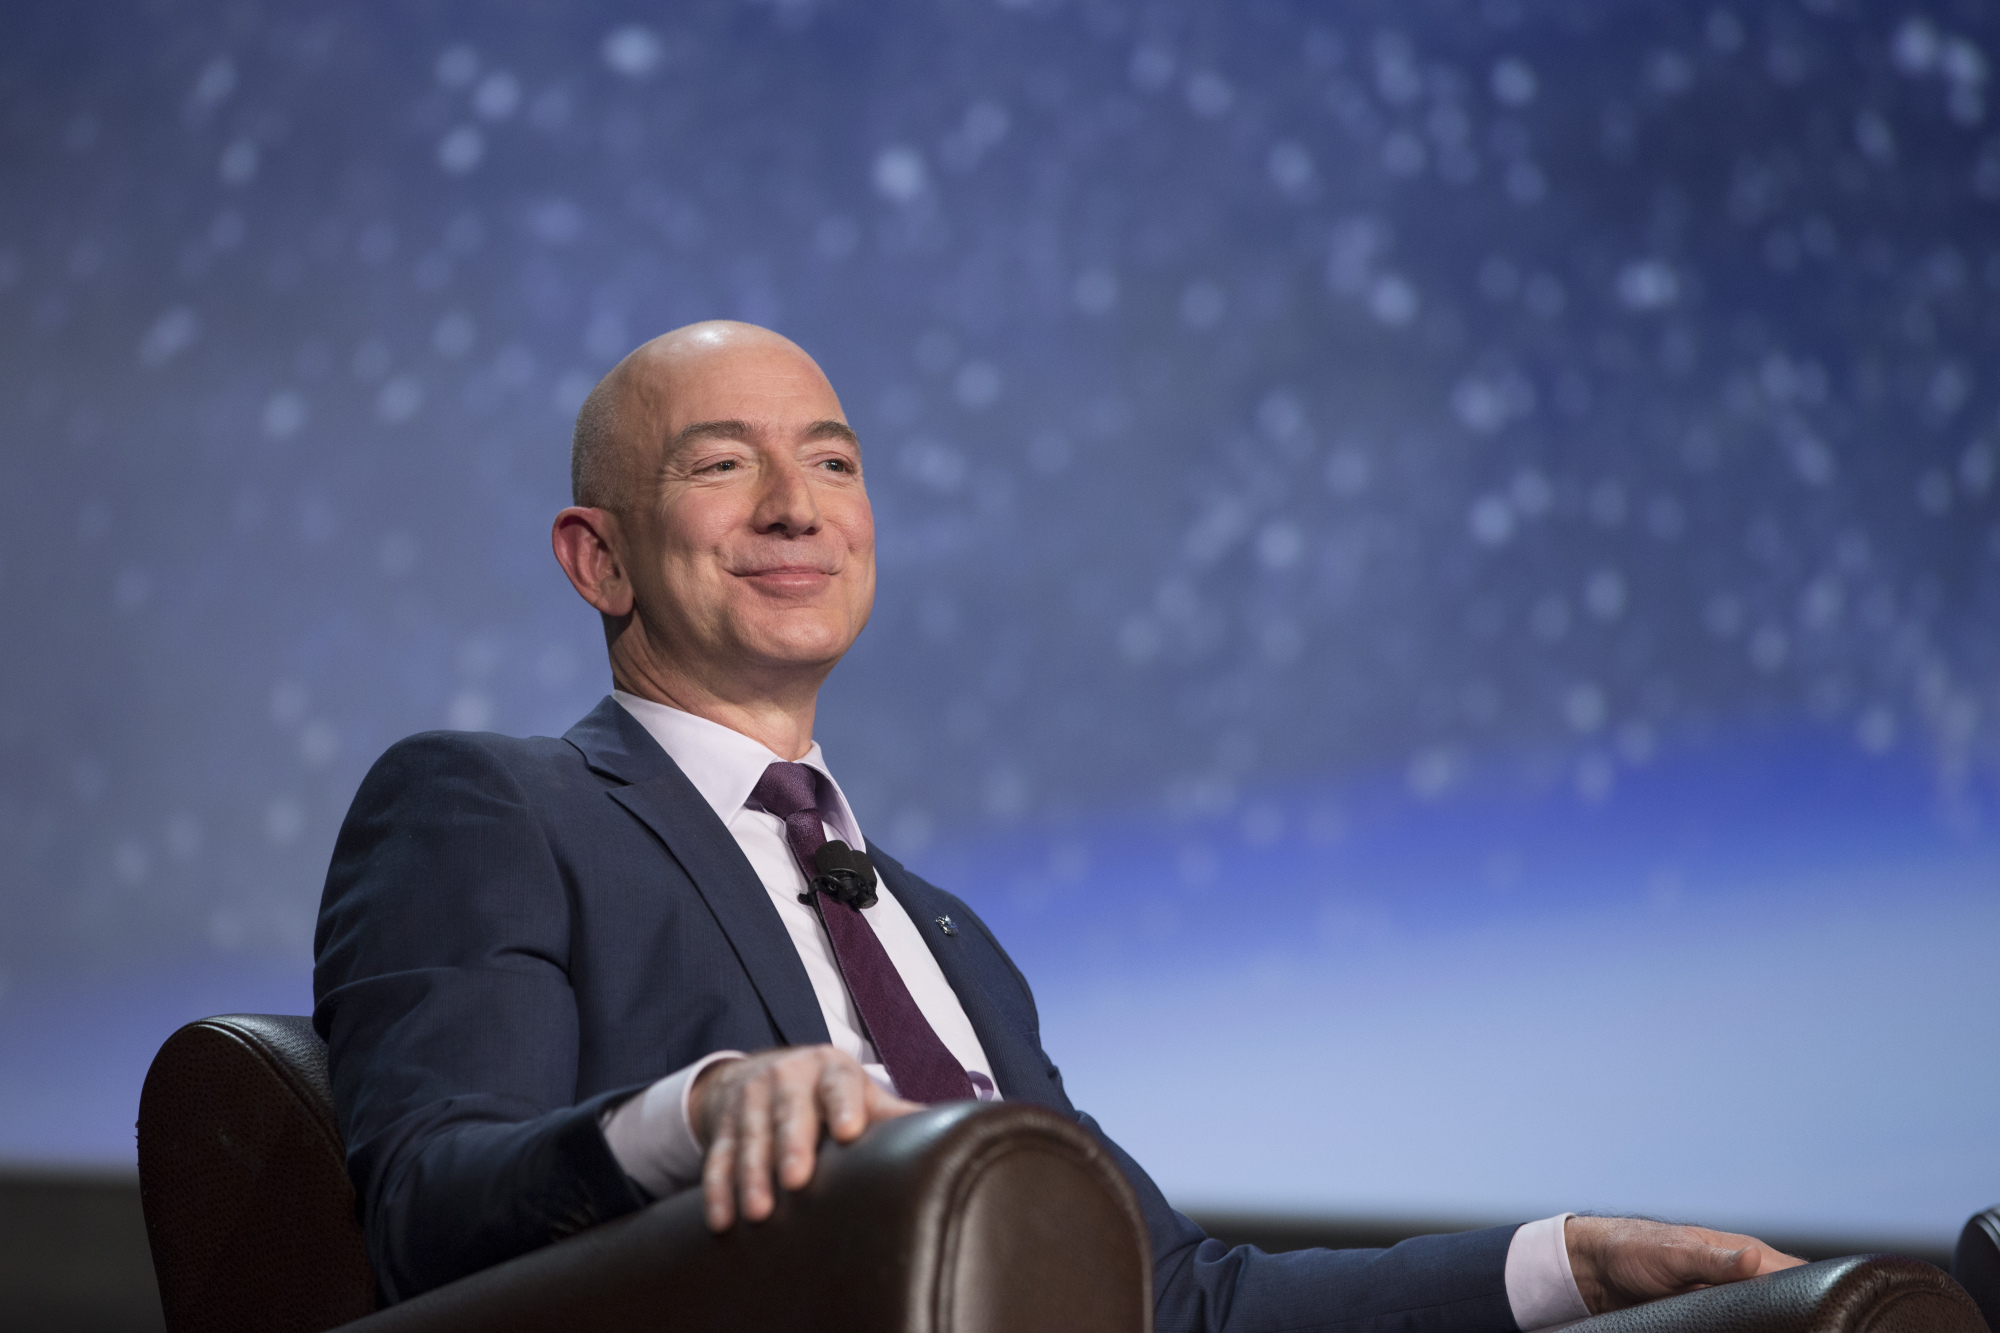 bloomberg.com - Olivia Carville - Jezz Bezos Becomes the Richest Man in Modern History, Topping $150 Billion